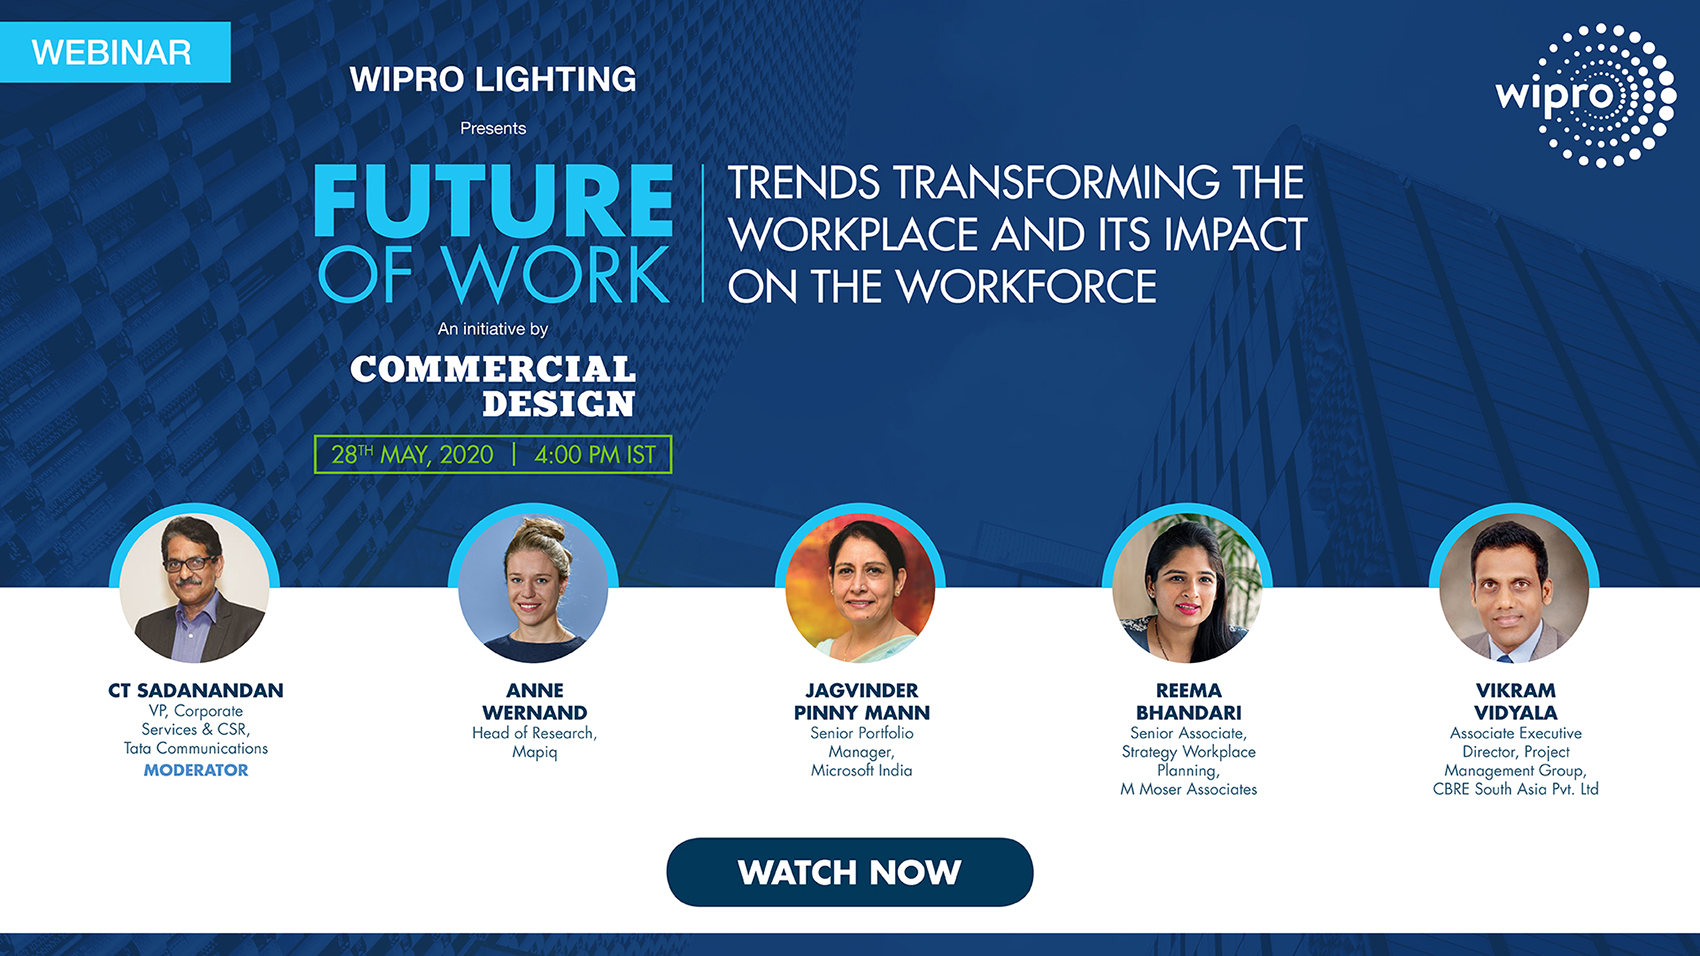 Future of Work: Trends transforming workplace and its impact on workforce